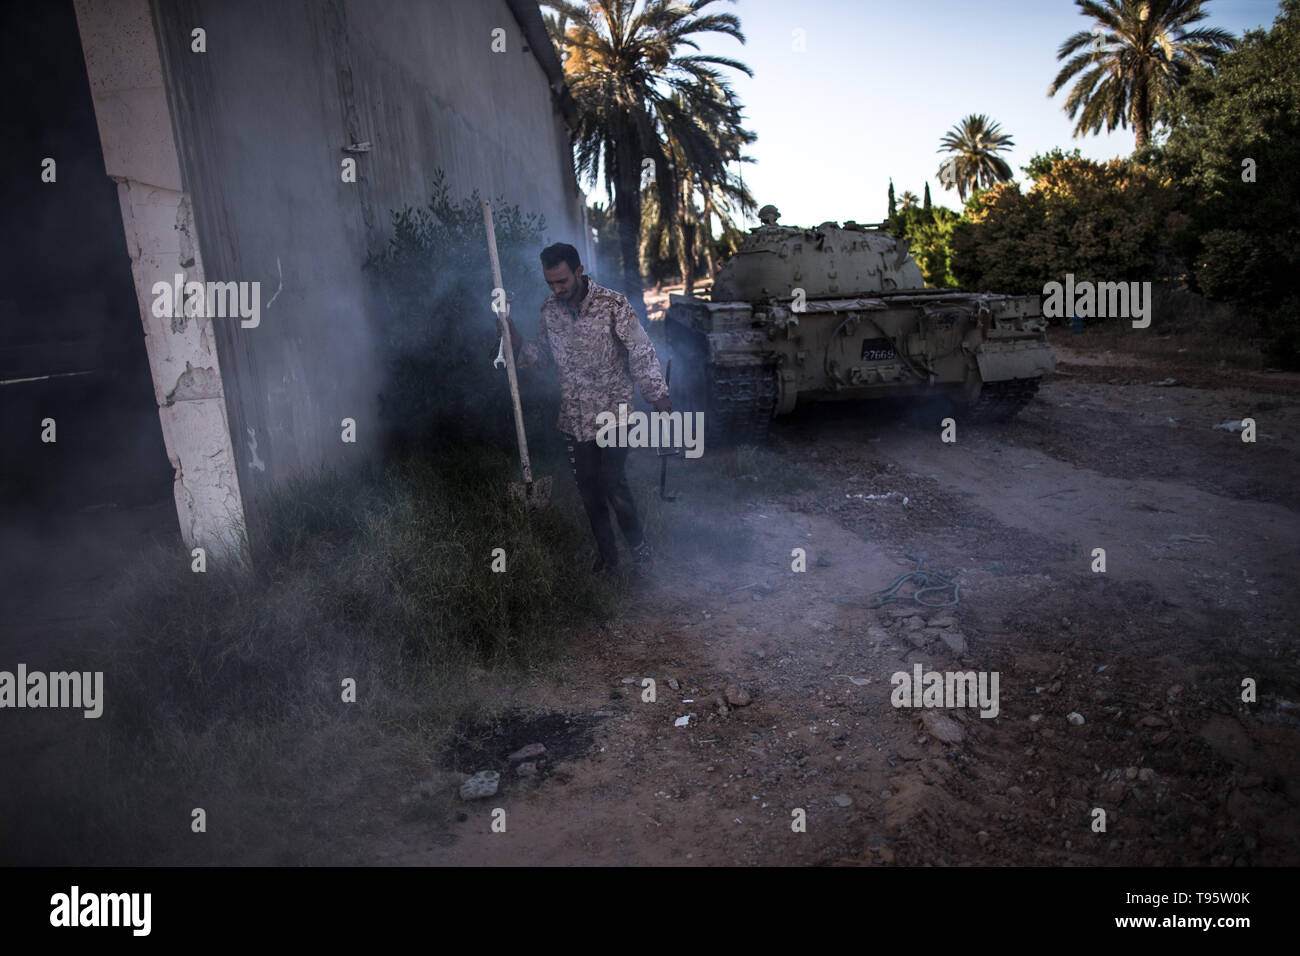 Tripoli, Libya. 16th May, 2019. A fighter from UN-backed government forces is seen in Al-Sawani frontline near Tripoli airport in Tripoli, Libya, on May 16, 2019. At least six civilians were reported killed and five more injured in an apparent airstrike in populated areas of the Libyan capital of Tripoli, Stephane Dujarric, spokesman for UN Secretary-General Antonio Guterres, said on Thursday. Credit: Amru Salahuddien/Xinhua/Alamy Live News - Stock Image